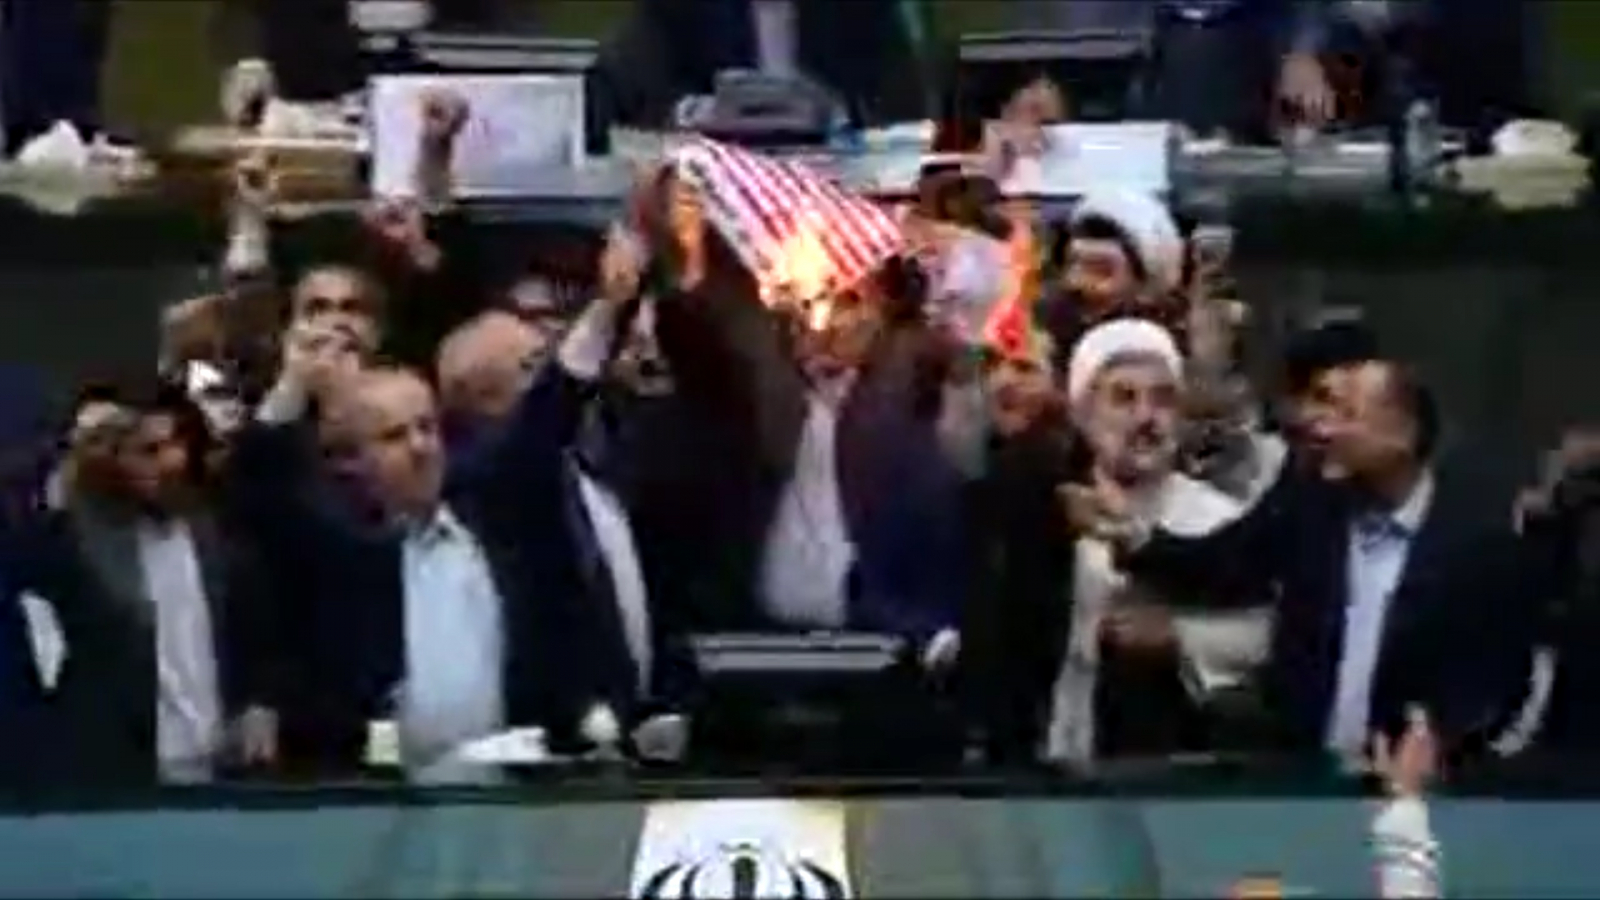 iranian-lawmakers-burn-u-s-flag-in-parliament